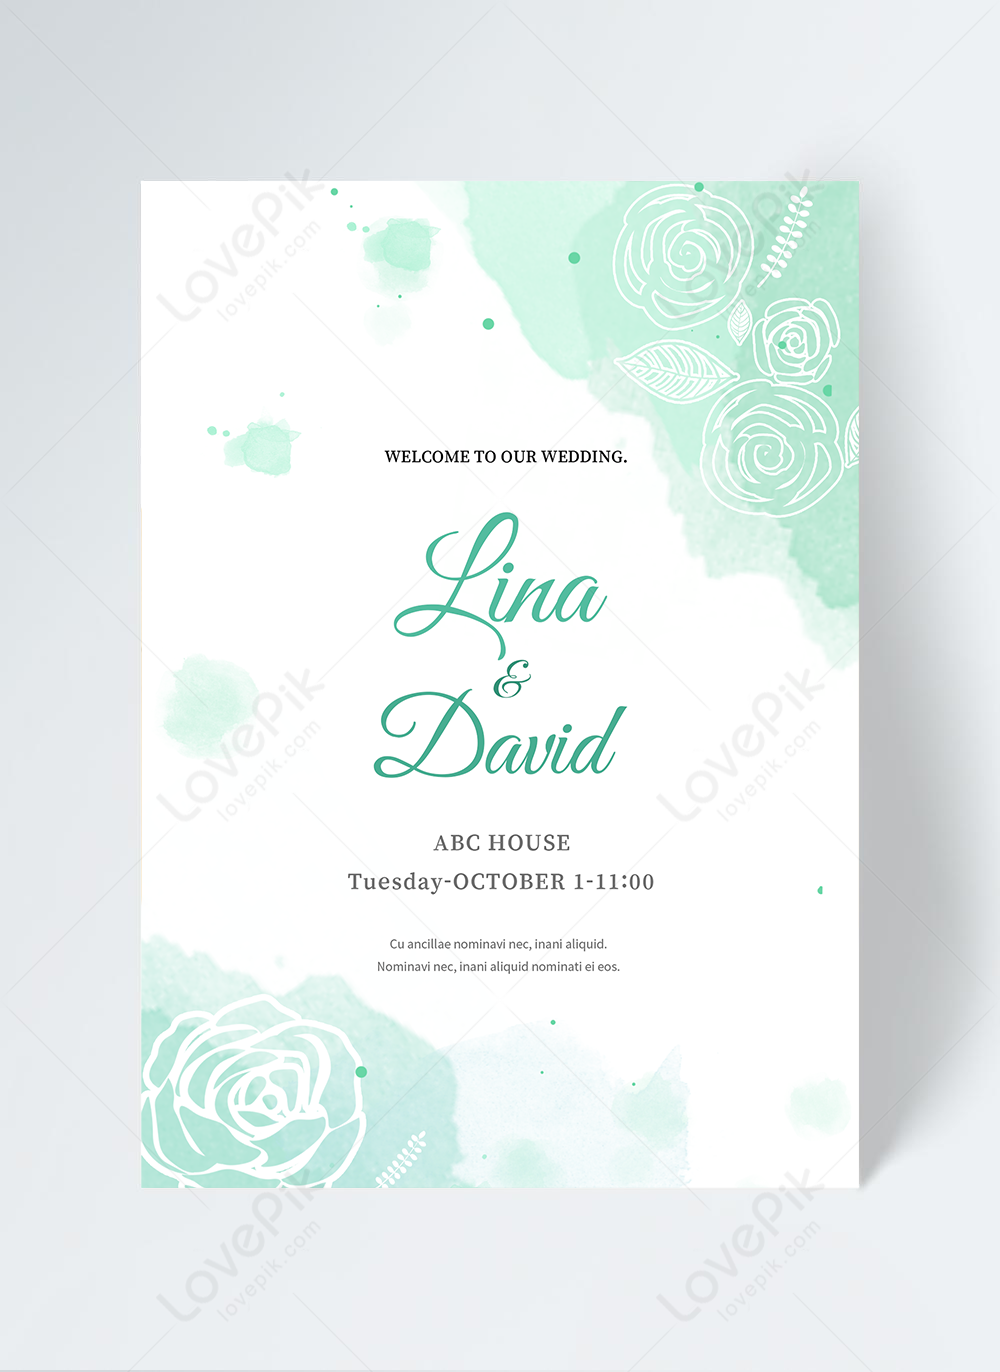 Elegant green watercolor wedding invitation template image_picture free  download 465427232_lovepik.com